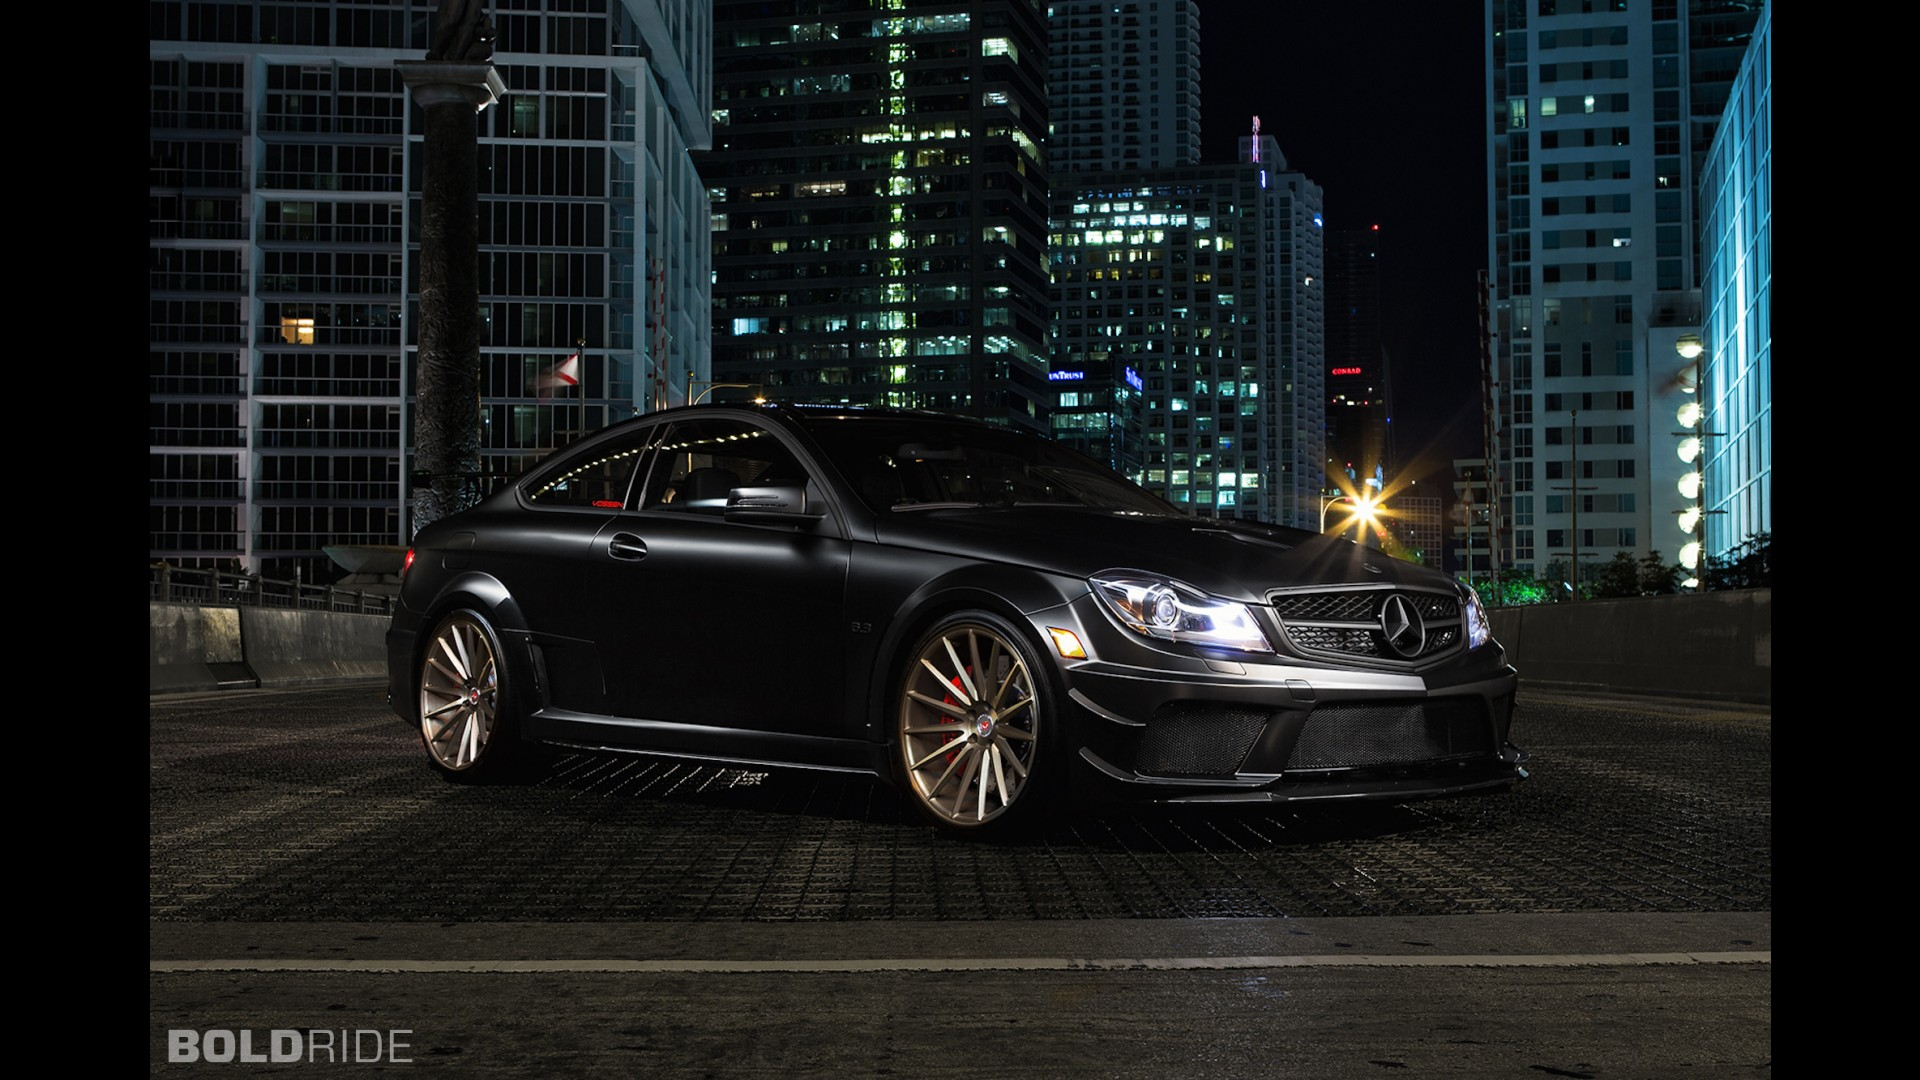 Vossen Mercedes-Benz C63 AMG Black Series